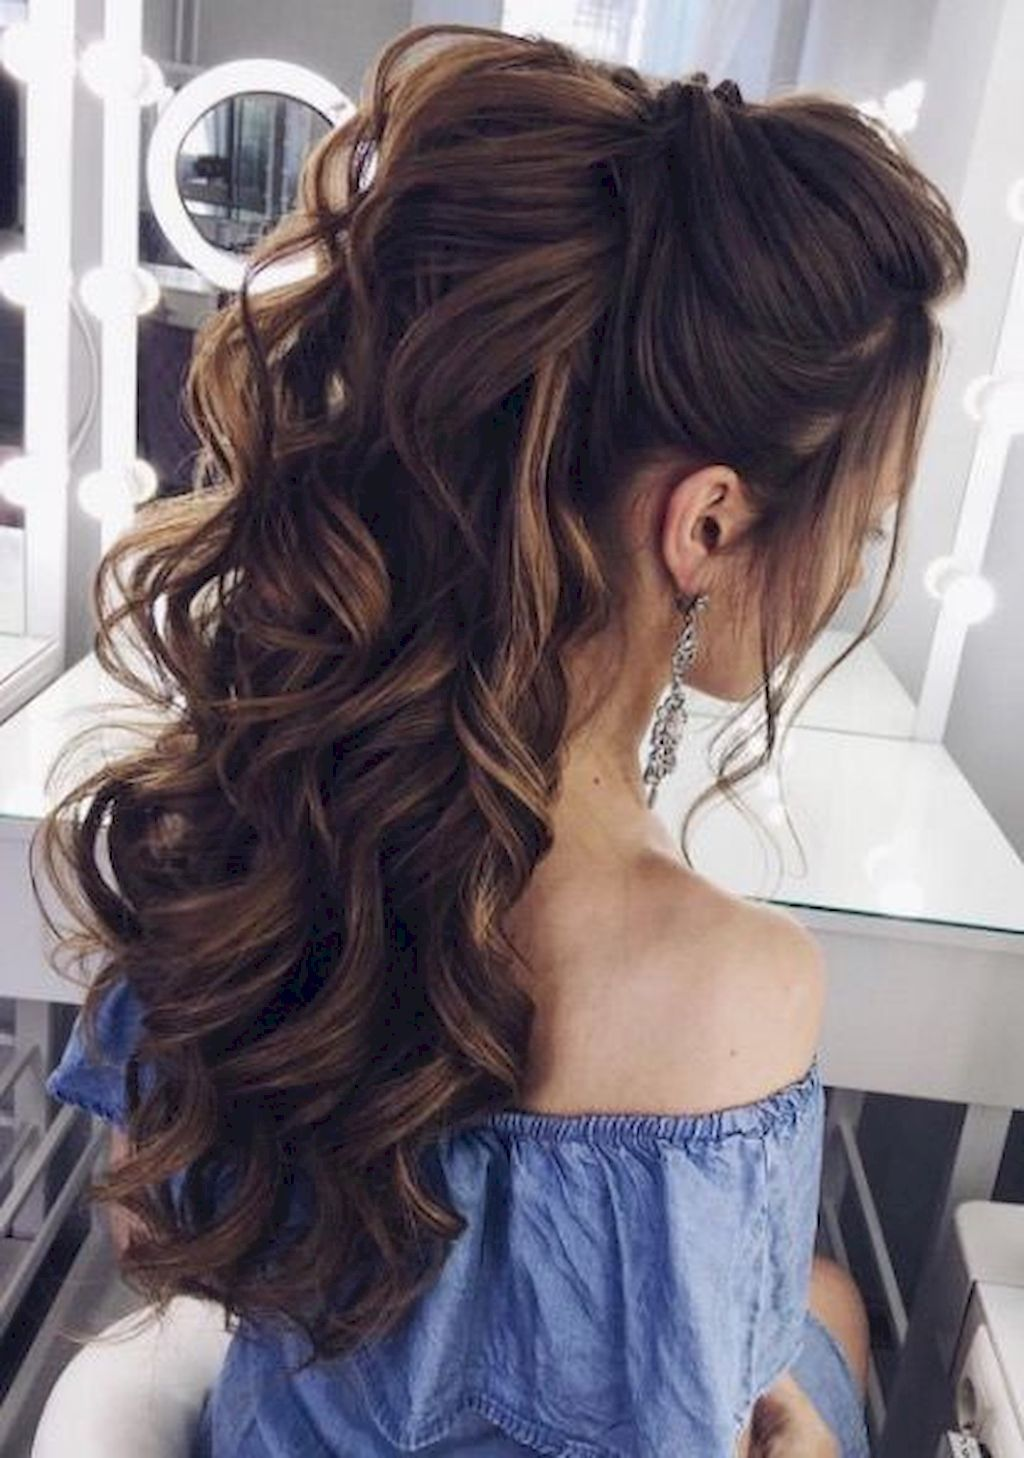 10 Bridal Wedding Hairstyles For Long Hair that will Inspire